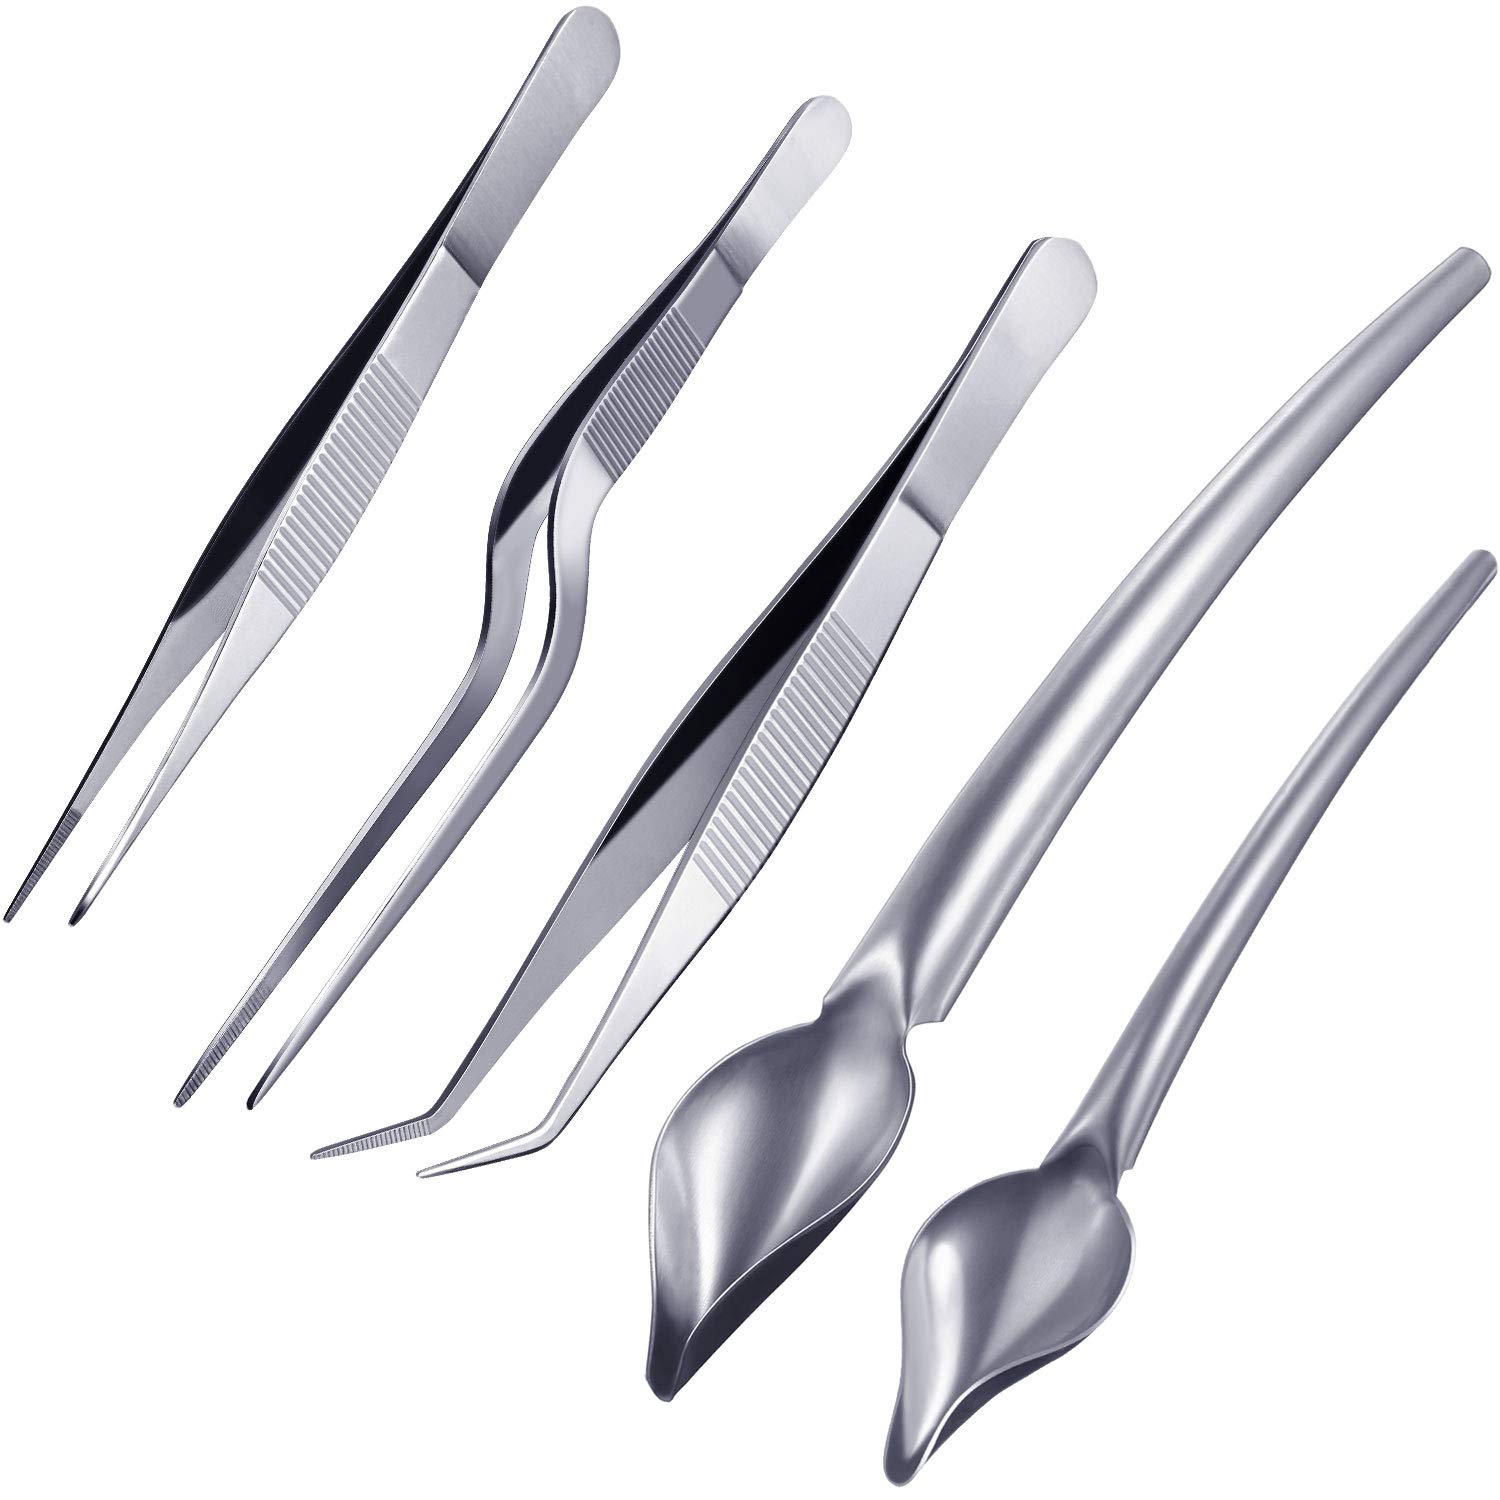 Boao 5 Pieces Stainless Steel Cooking Tweezers Precision Tongs with Precision Serrated Tips and Multi-use Decor Precision Culinary Drawing Spoons for Plates Decorating